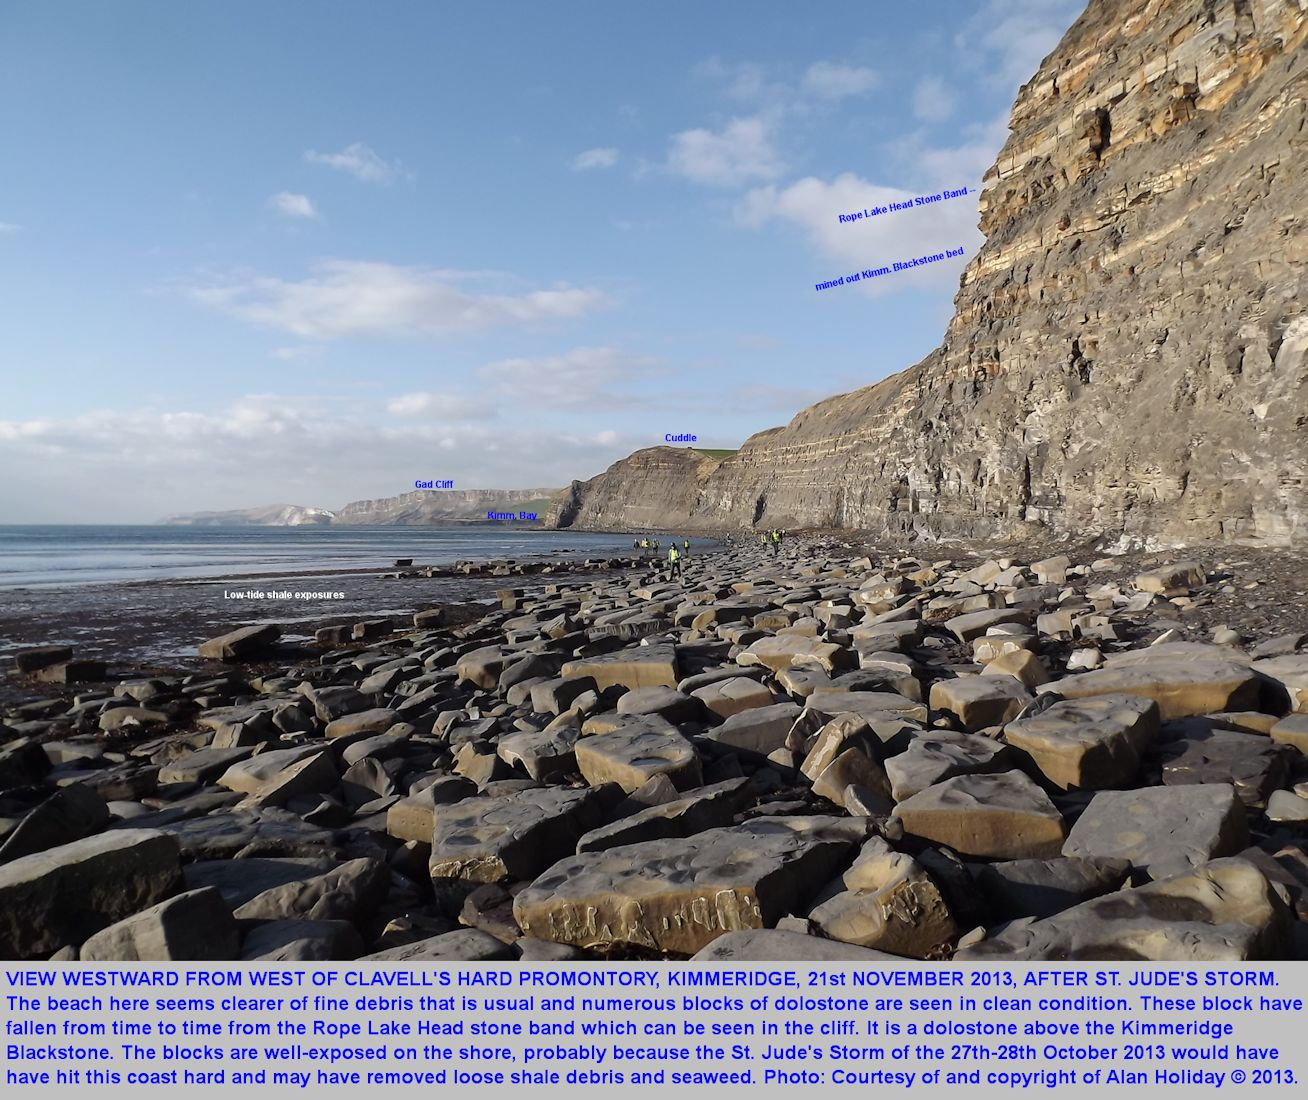 The coast immediately west of Clavell's Hard, view westward, showing fallen blocks that have come from the Rope Lake Stone Band, which is above the position of worked-out Blackstone, oil shale, in the cliff,  Kimmeridge Bay, Dorset, photograph by Alan Holiday, 21st November 2013, at low tide